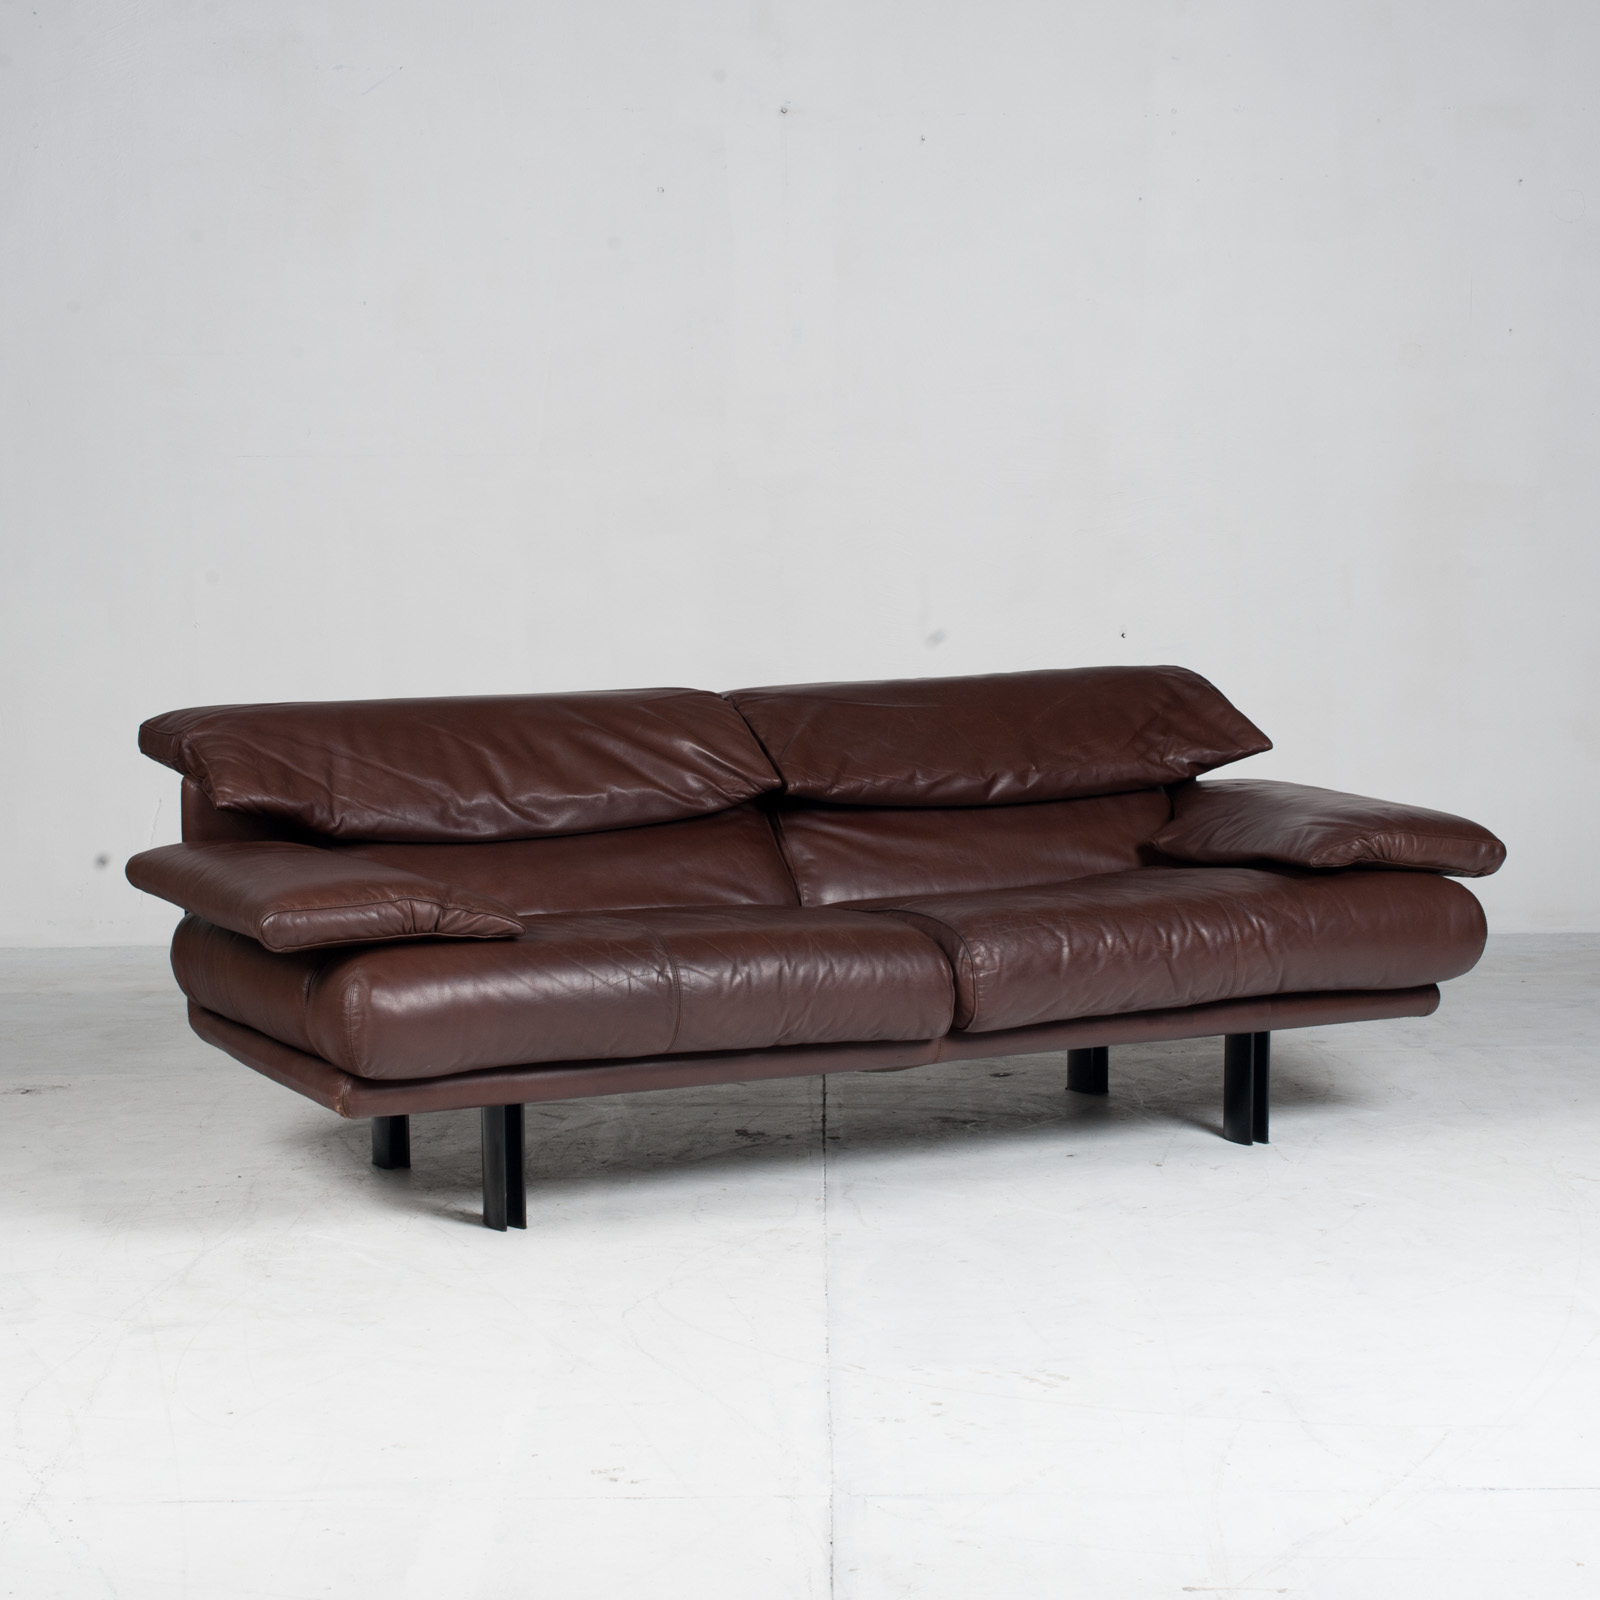 Alanda Sofa By Paolo Piva For B&b Italia In Burgundy Leather 1980s Italy 07